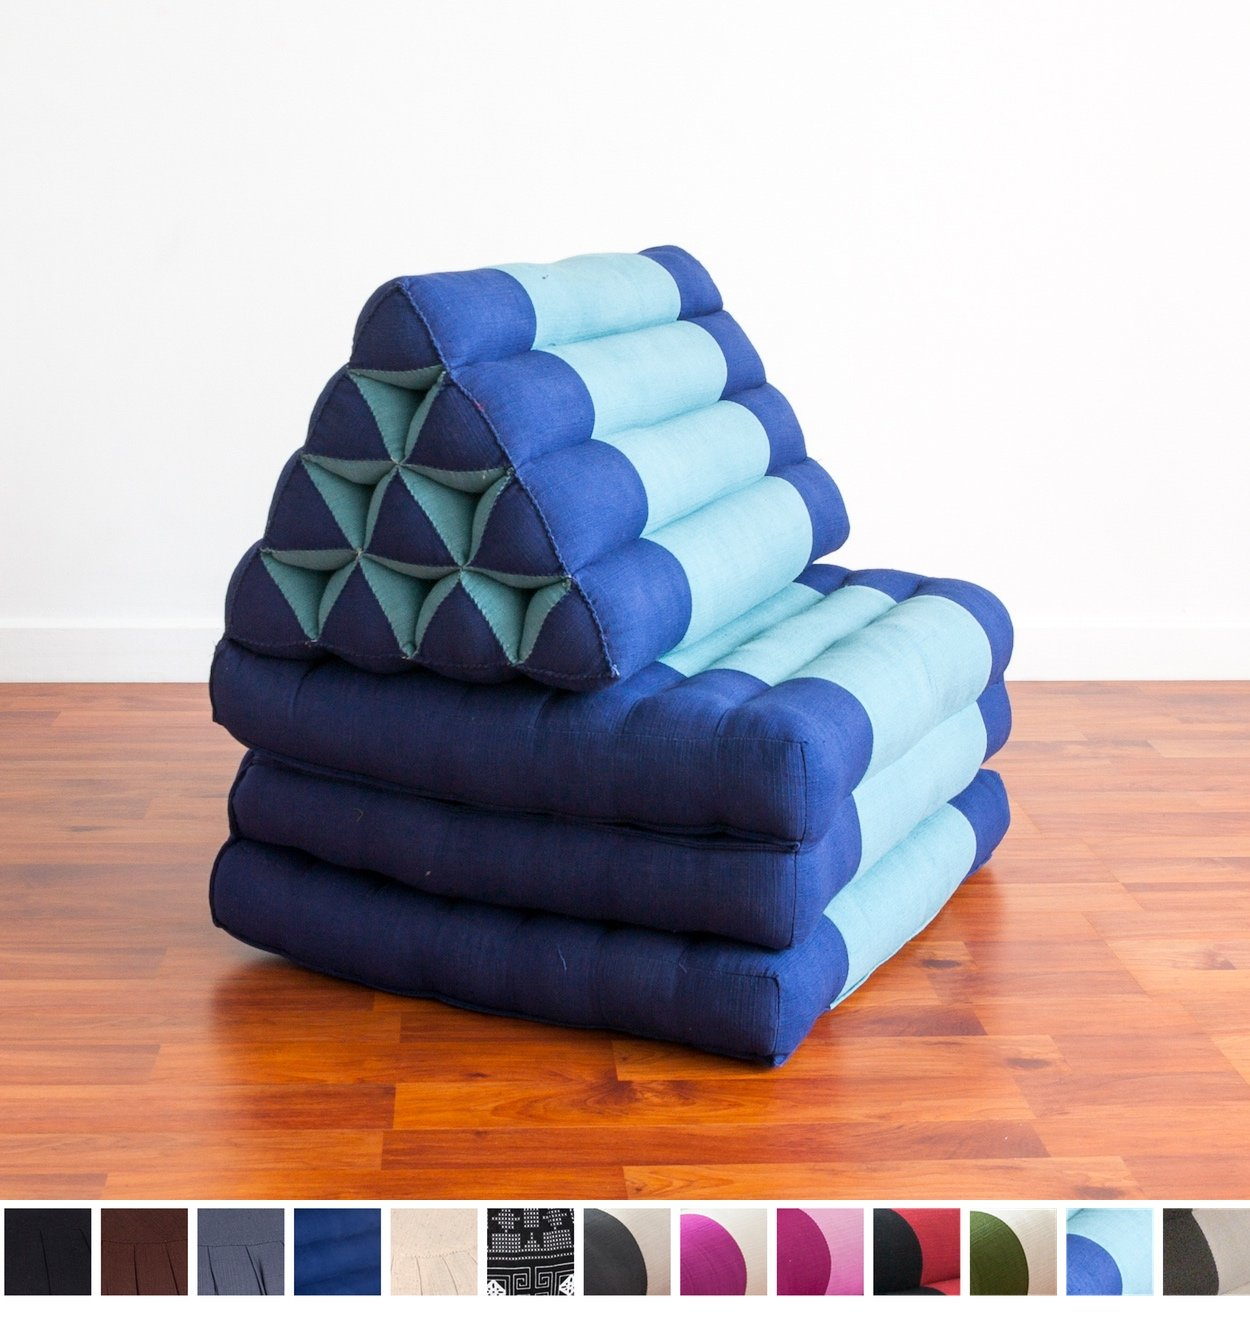 Leewadee Foldout Triangle Thai Cushion, 67x21x3 inches, Kapok Fabric, Blue, Premium Double Stitched by Leewadee